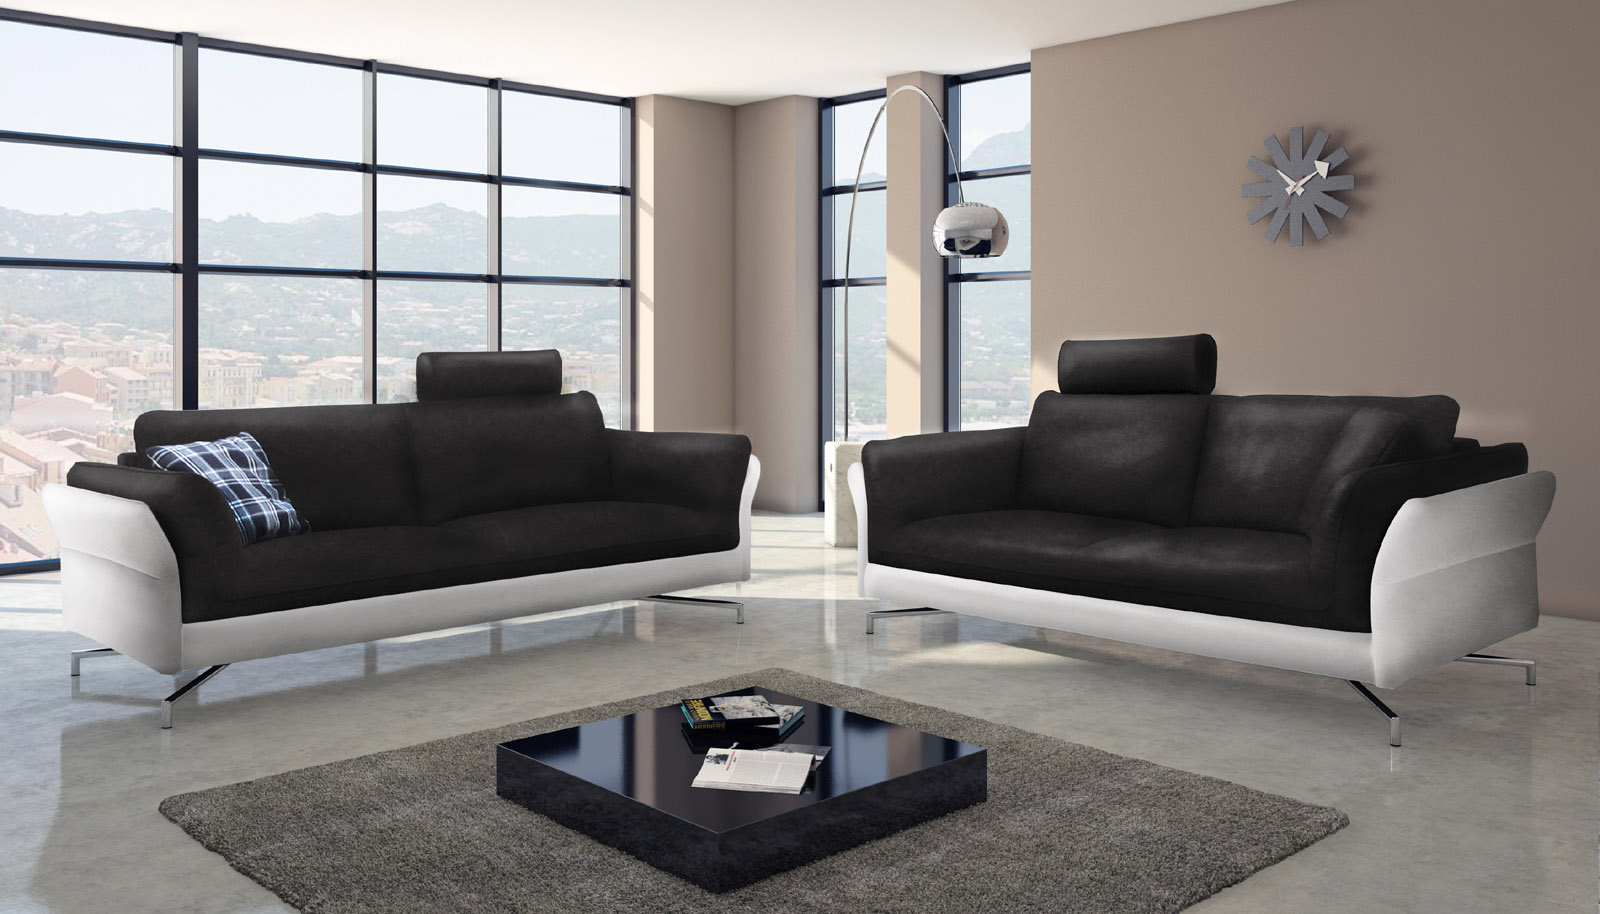 sam design sofa garnitur 2 3 sitzer schwarz wei vivano. Black Bedroom Furniture Sets. Home Design Ideas